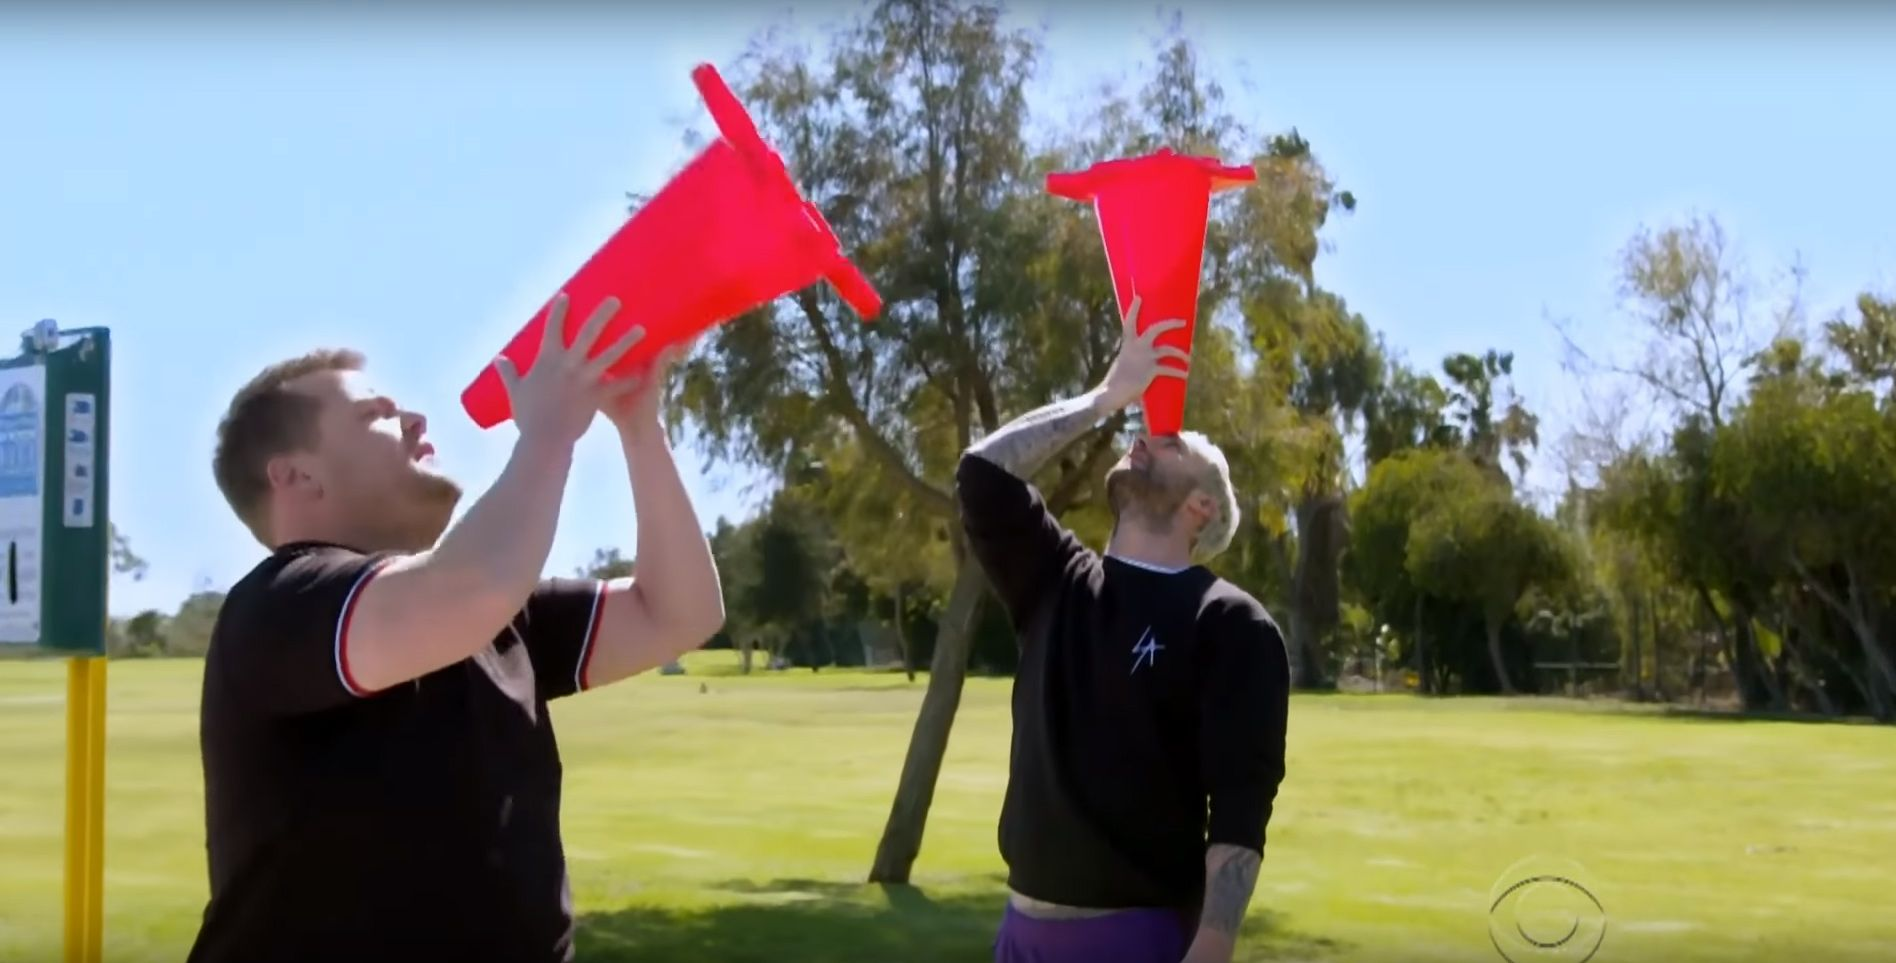 Adam Levine and James Corden balancing pylons on their faces